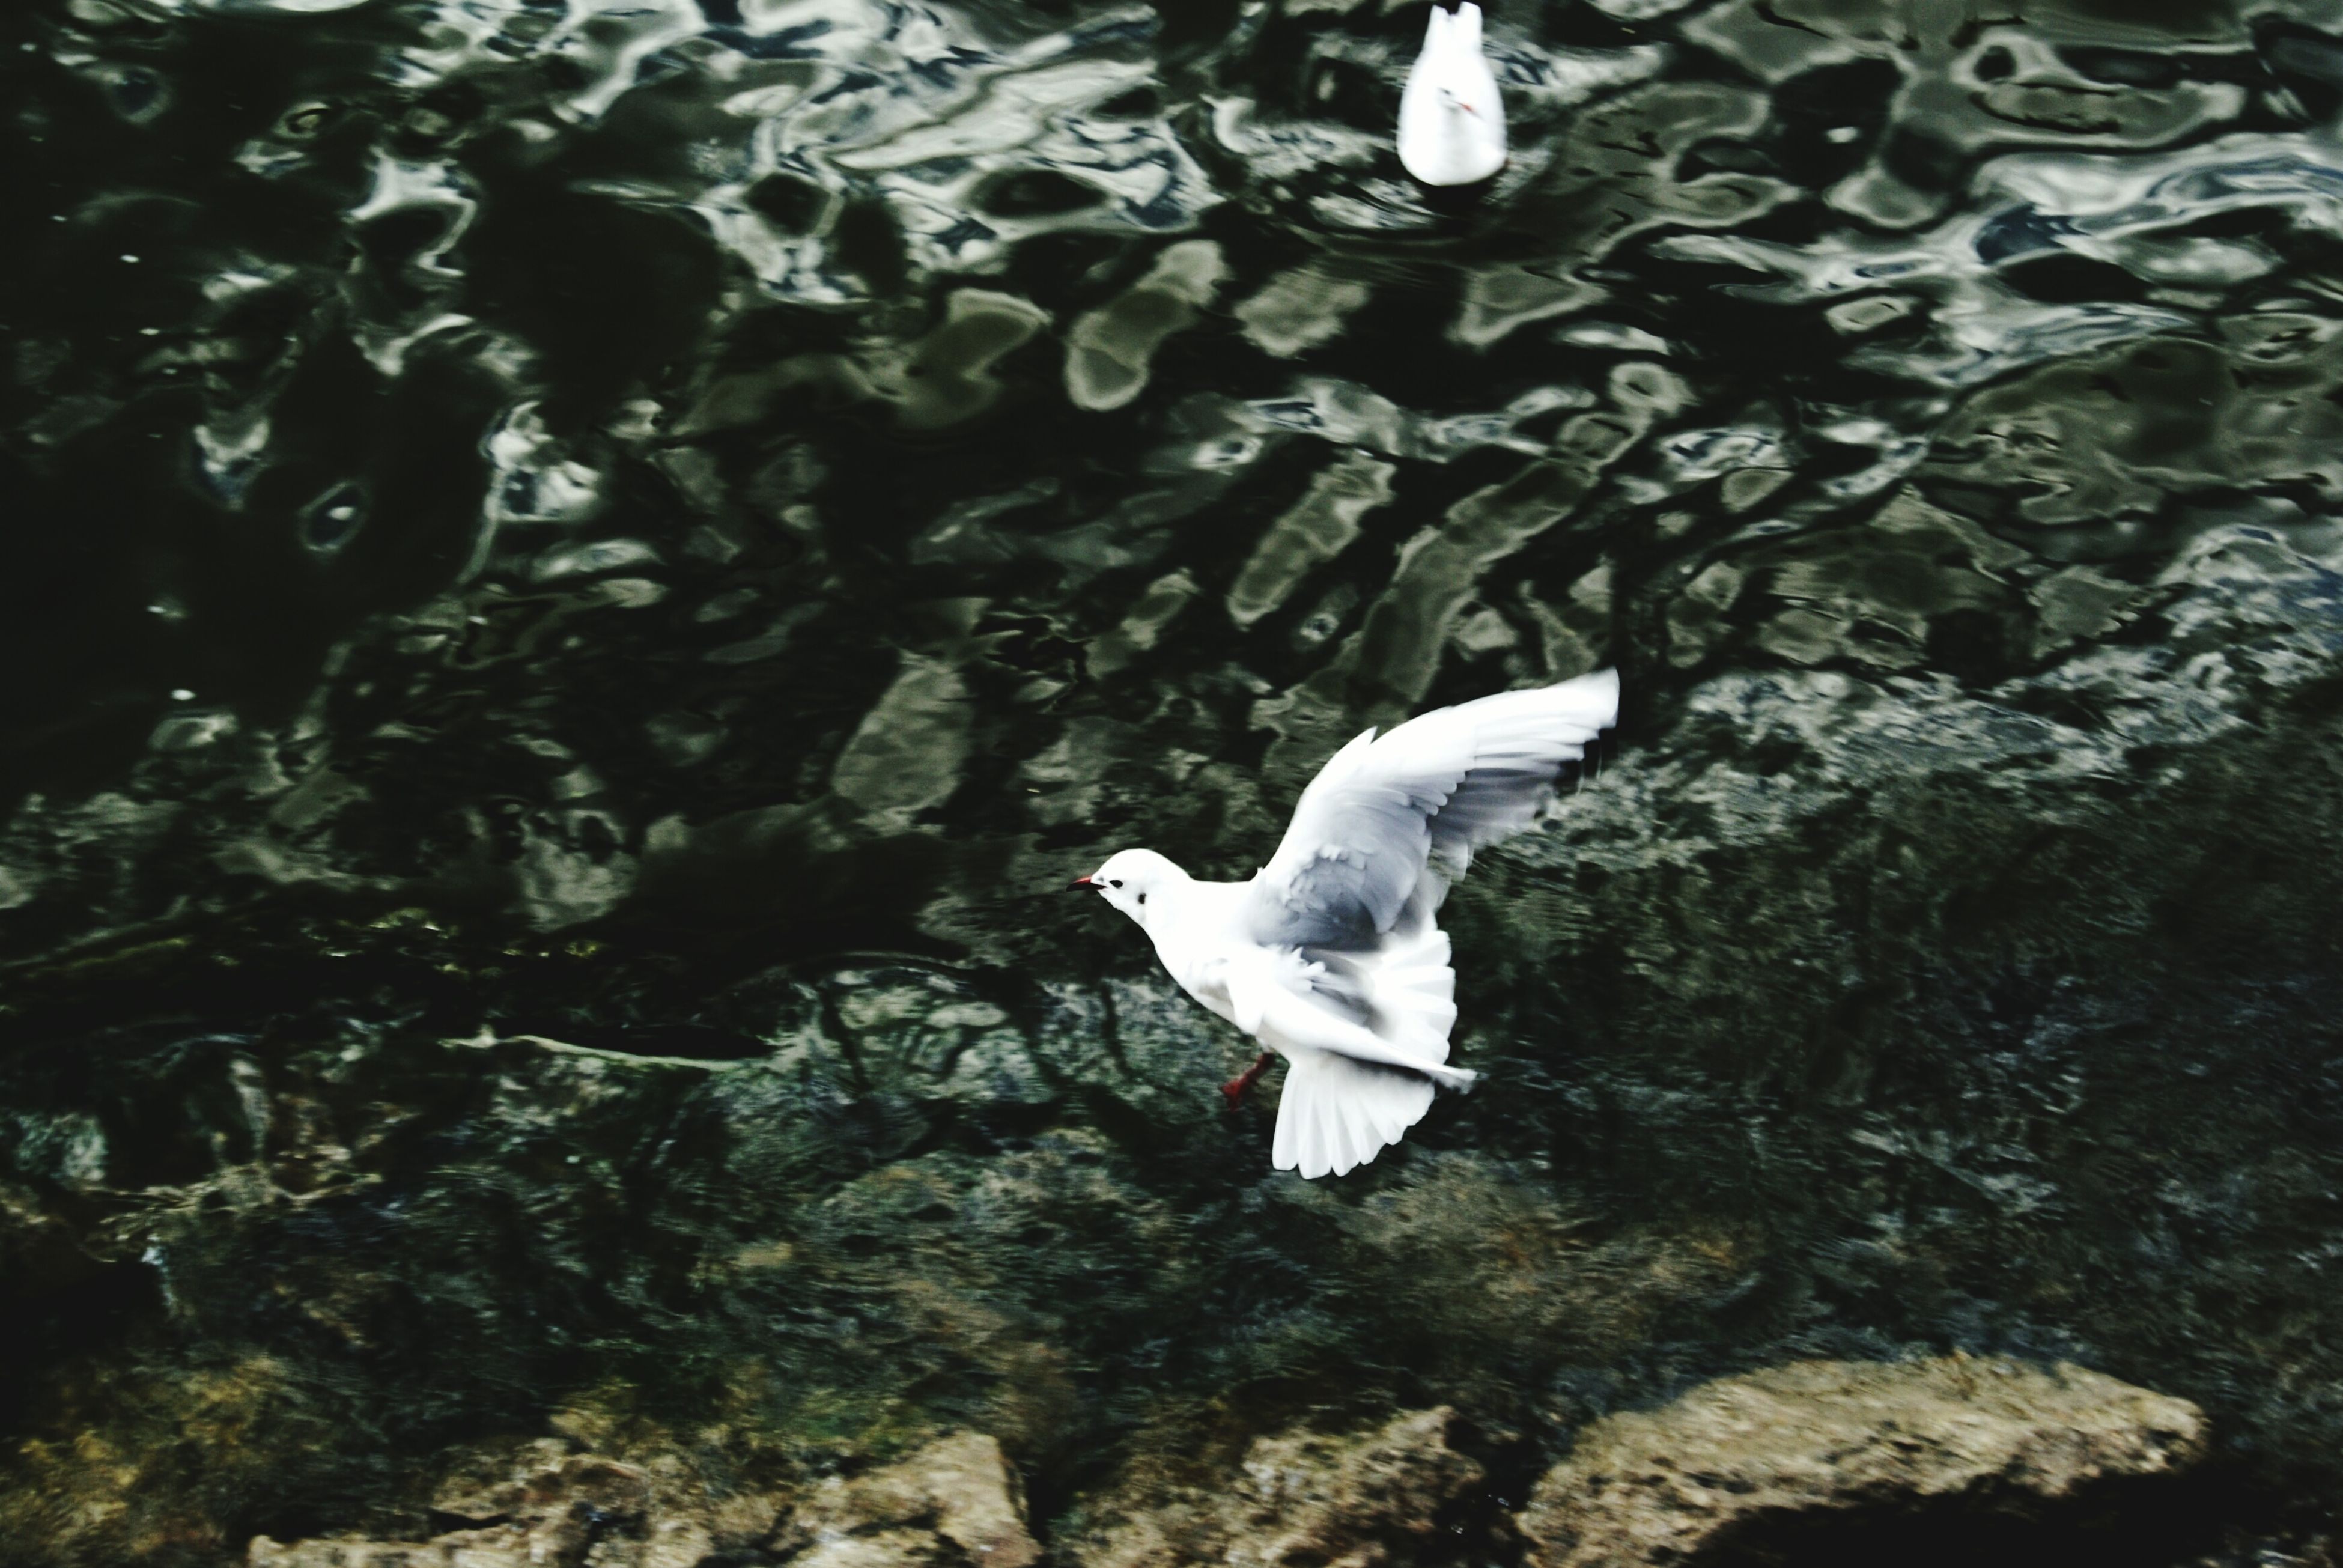 animal themes, animals in the wild, bird, wildlife, one animal, high angle view, flying, white color, water, spread wings, nature, swimming, seagull, day, outdoors, no people, beauty in nature, fish, full length, mid-air